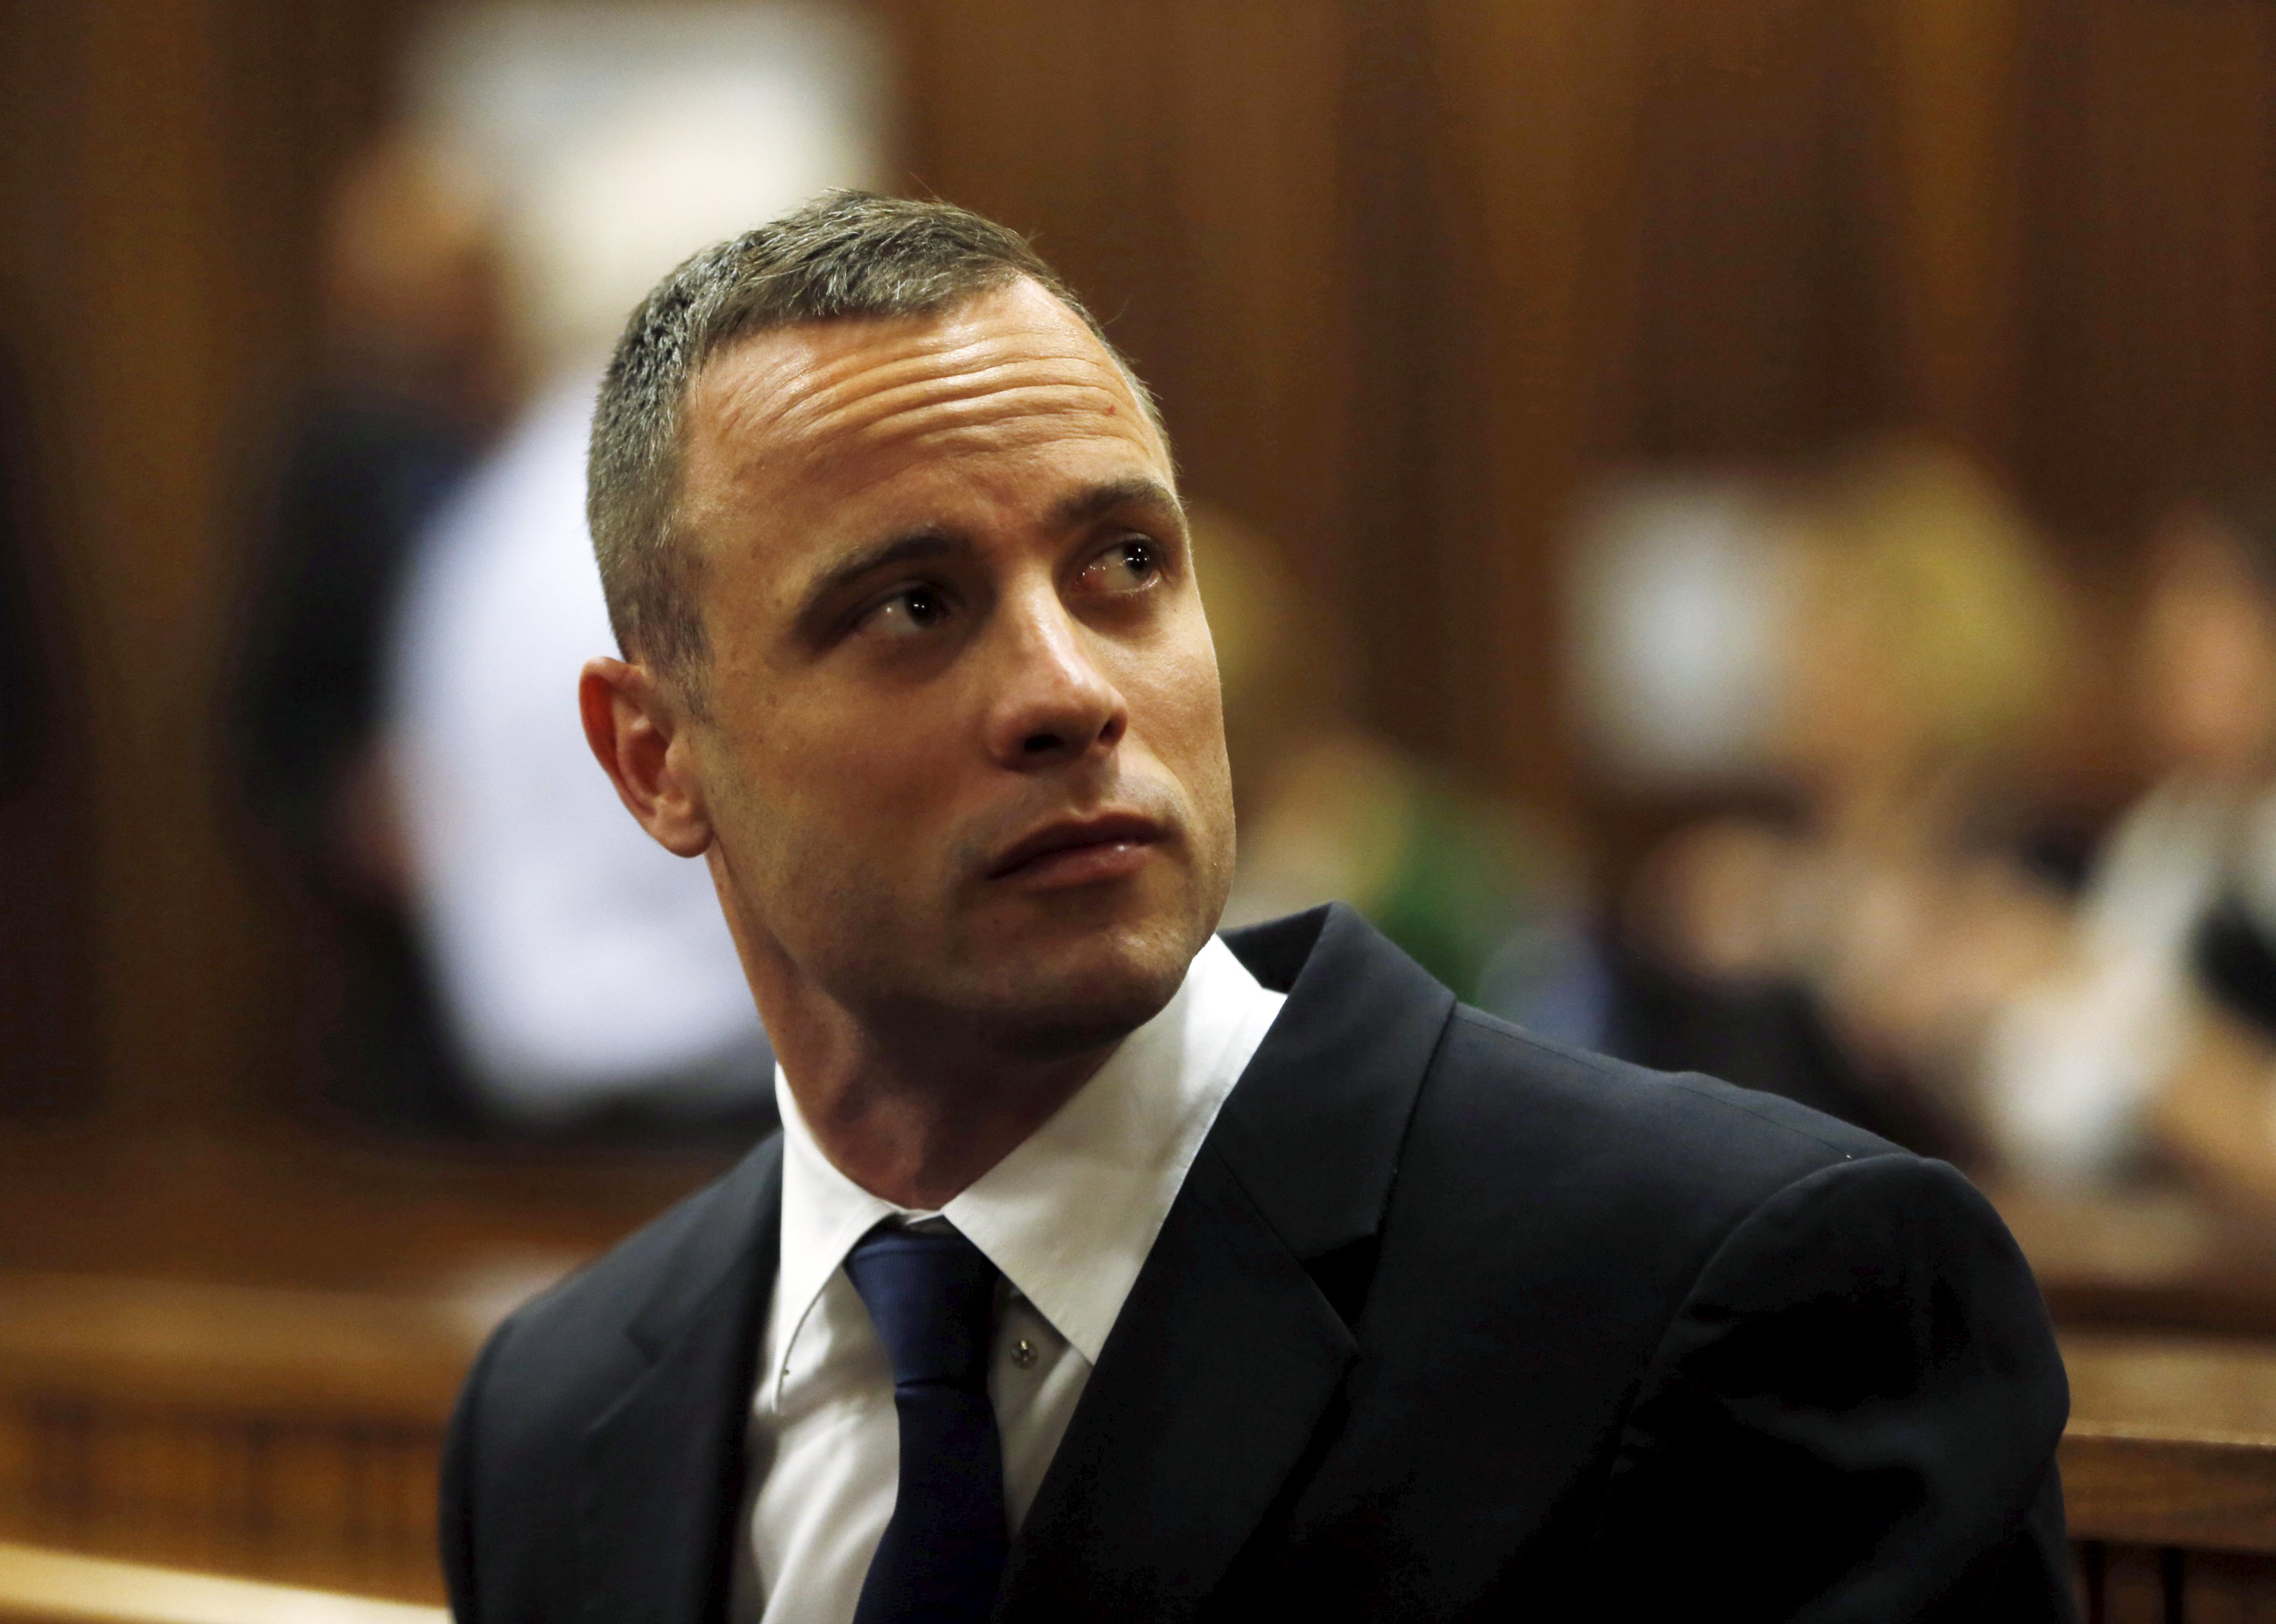 Olympic and Paralympic track star Oscar Pistorius sits in the dock in the North Gauteng High Court in Pretoria in this May 6, 2014 file photo. Courtesy: Reuters